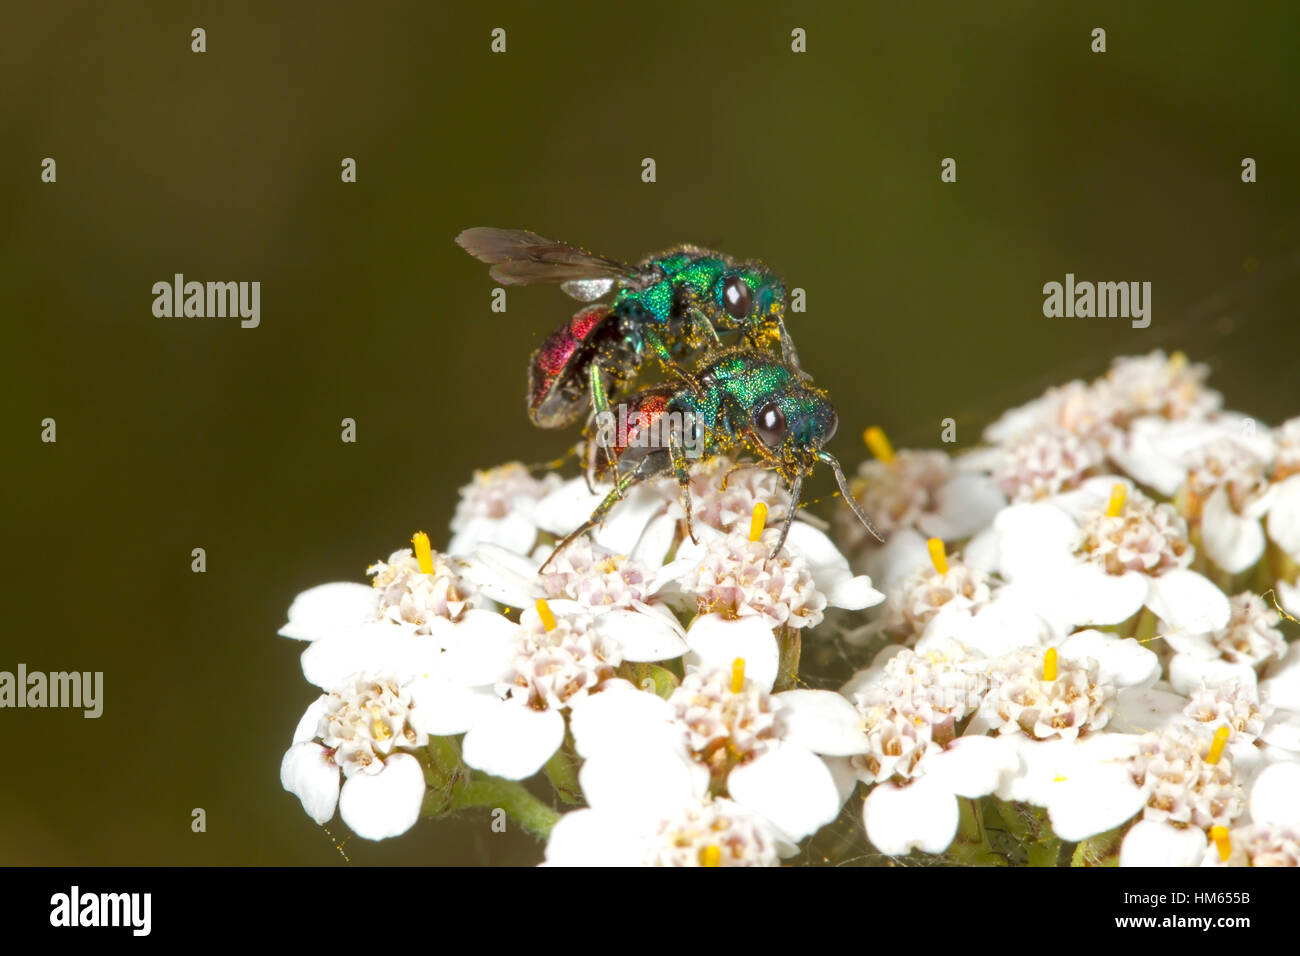 Jewel or Ruby-tailed Wasp - Hedychrum niemelai - male - Stock Image